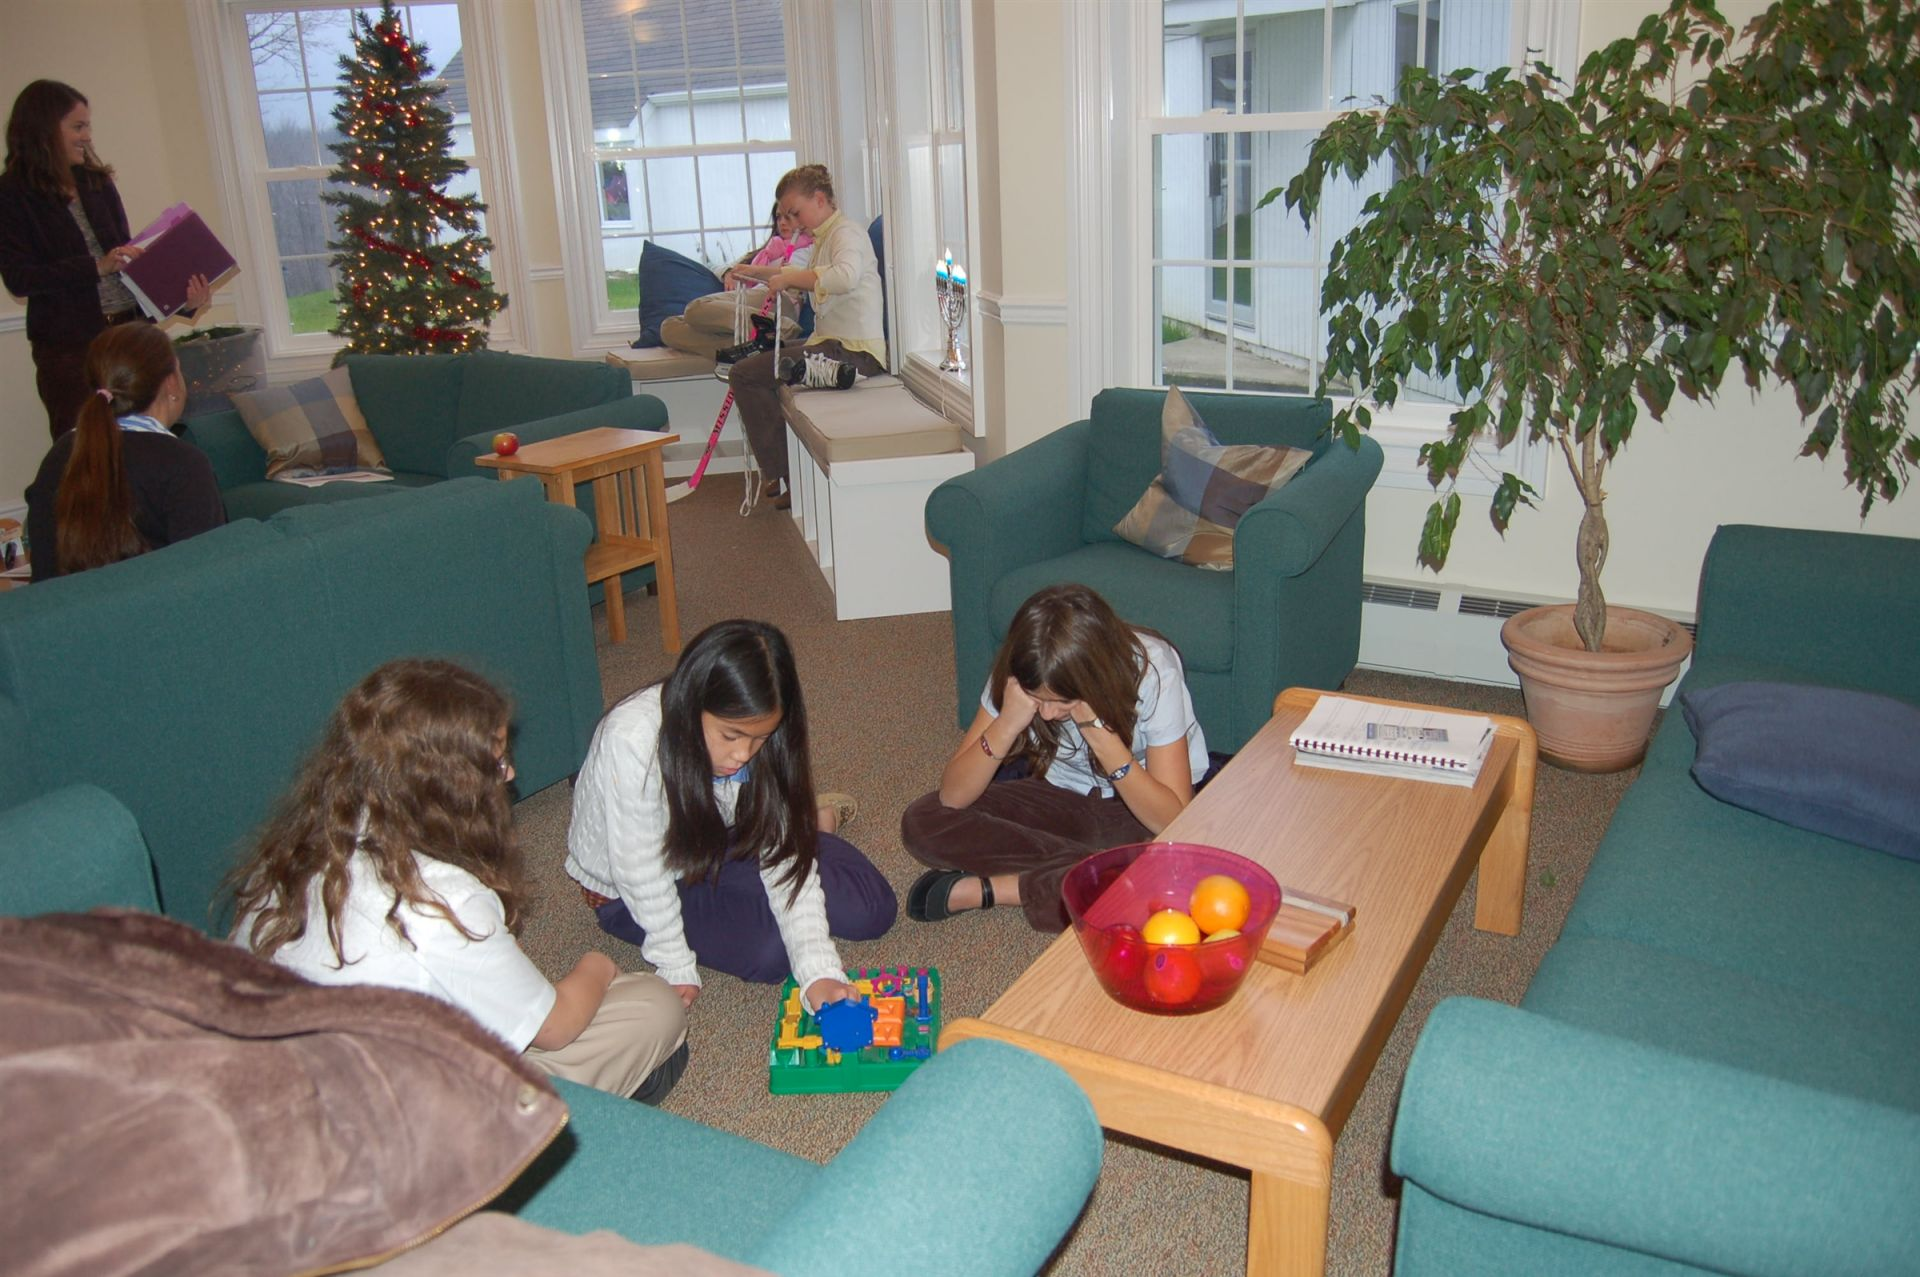 West Hall is divided into Upper West, which houses girls in grades 6-7, and Lower West, which houses girls in grades 7-8.